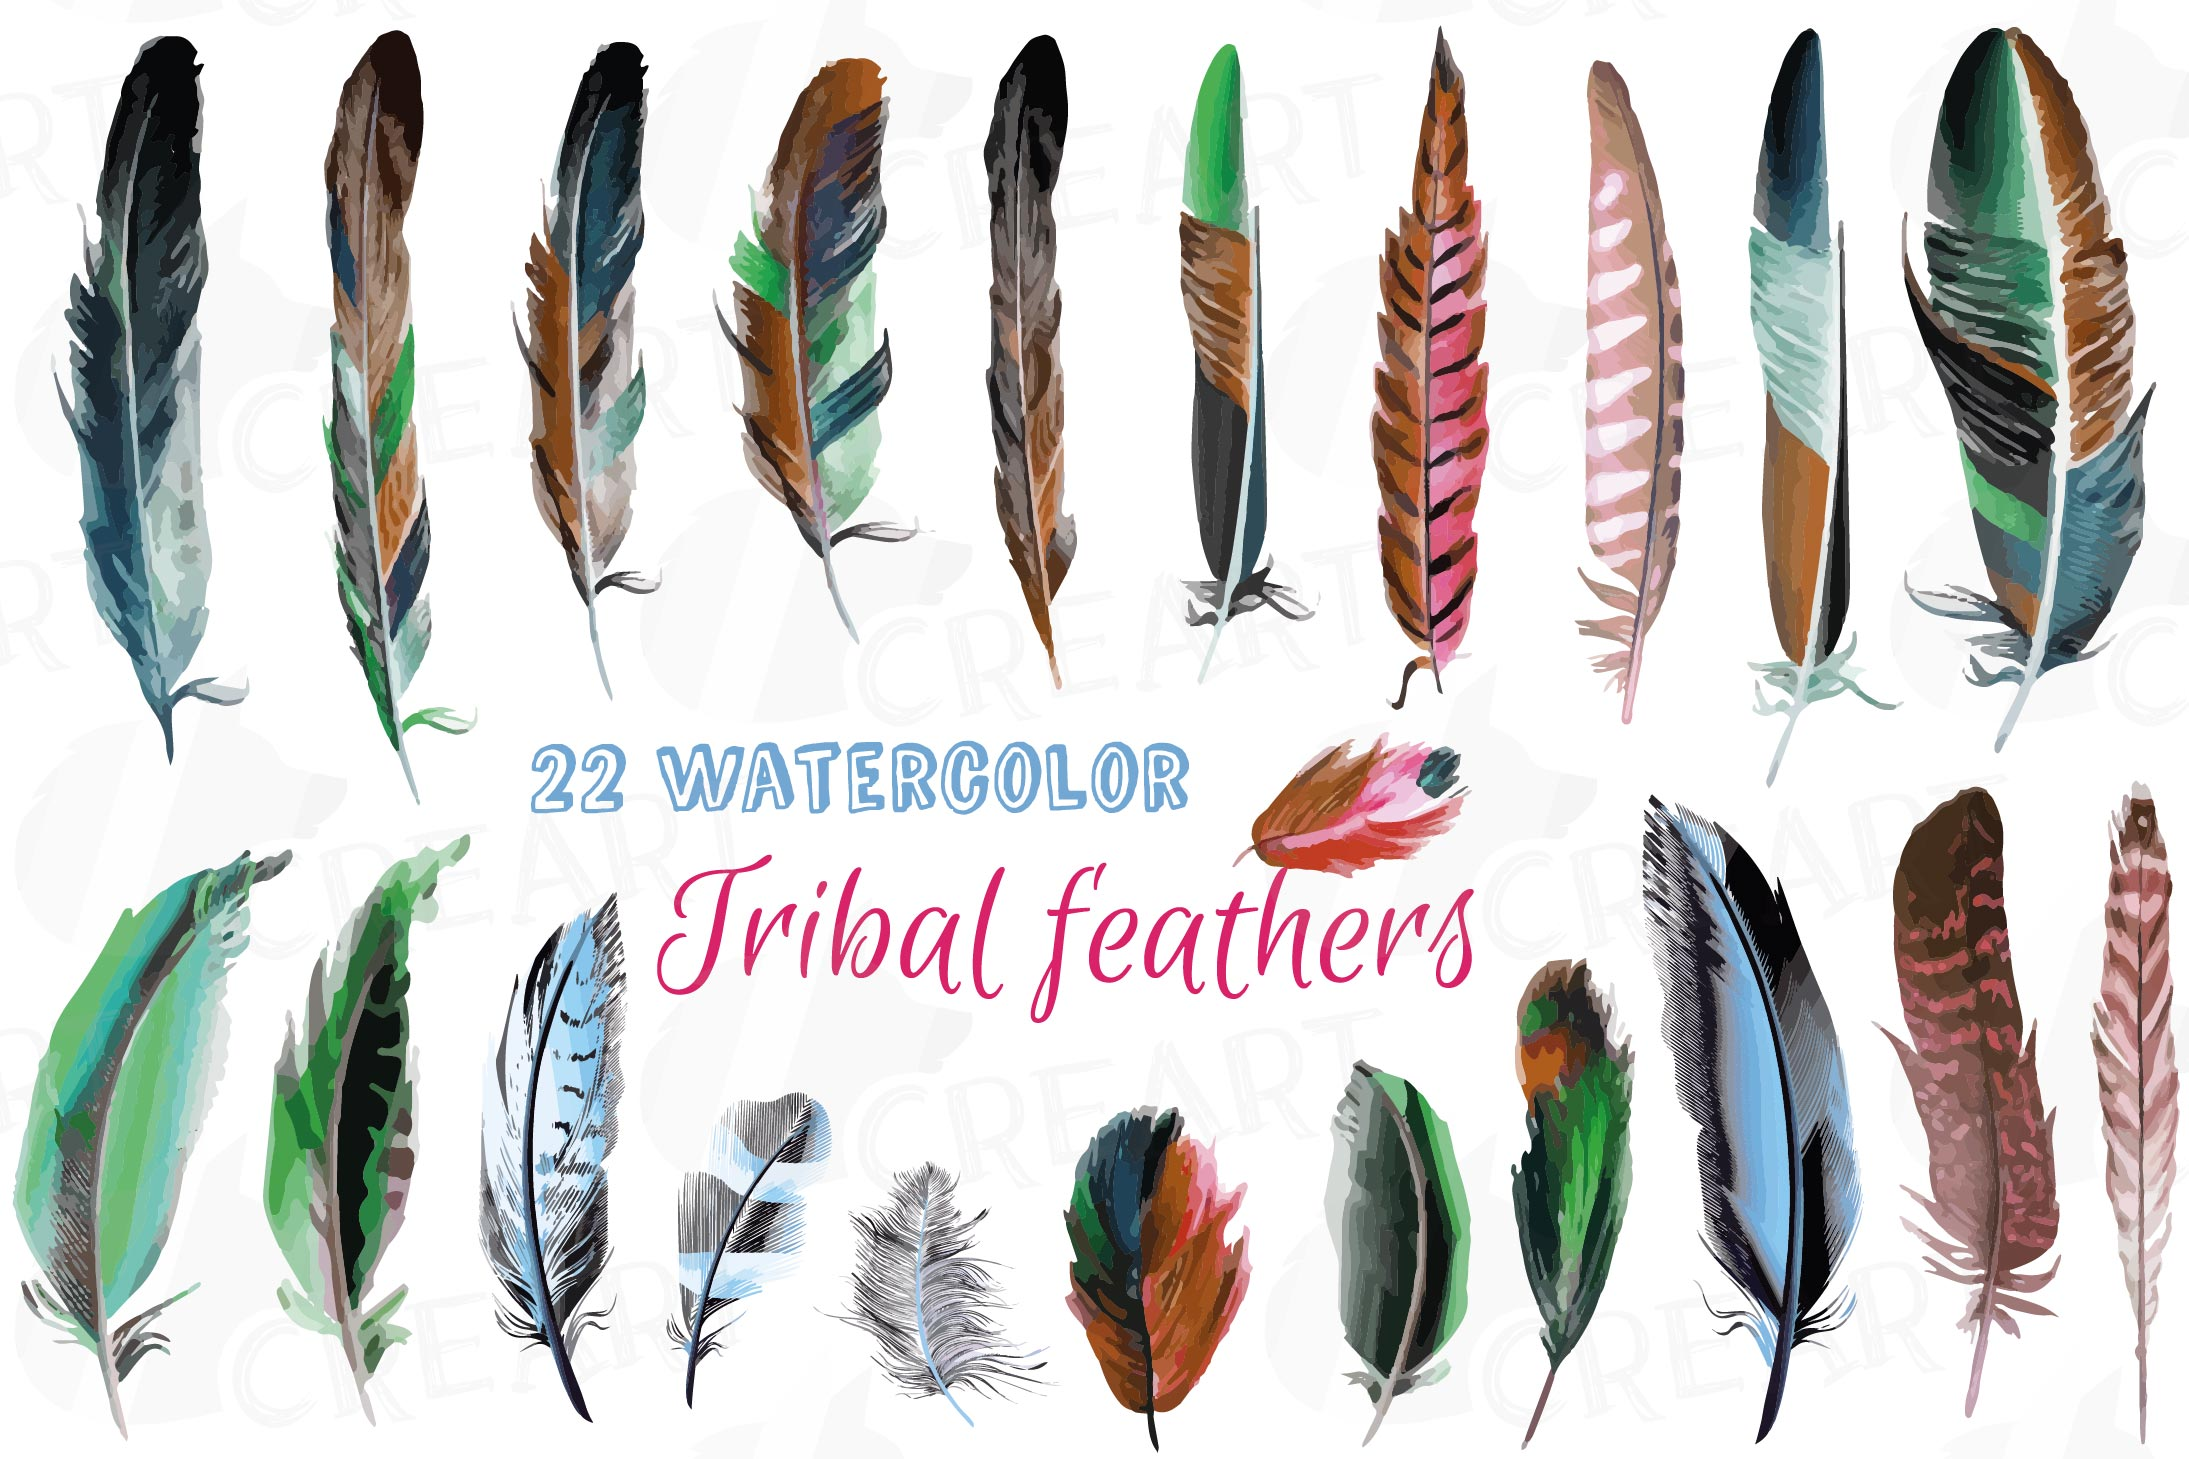 Watercolor tribal feathers clip art, colorful Boho feathers.